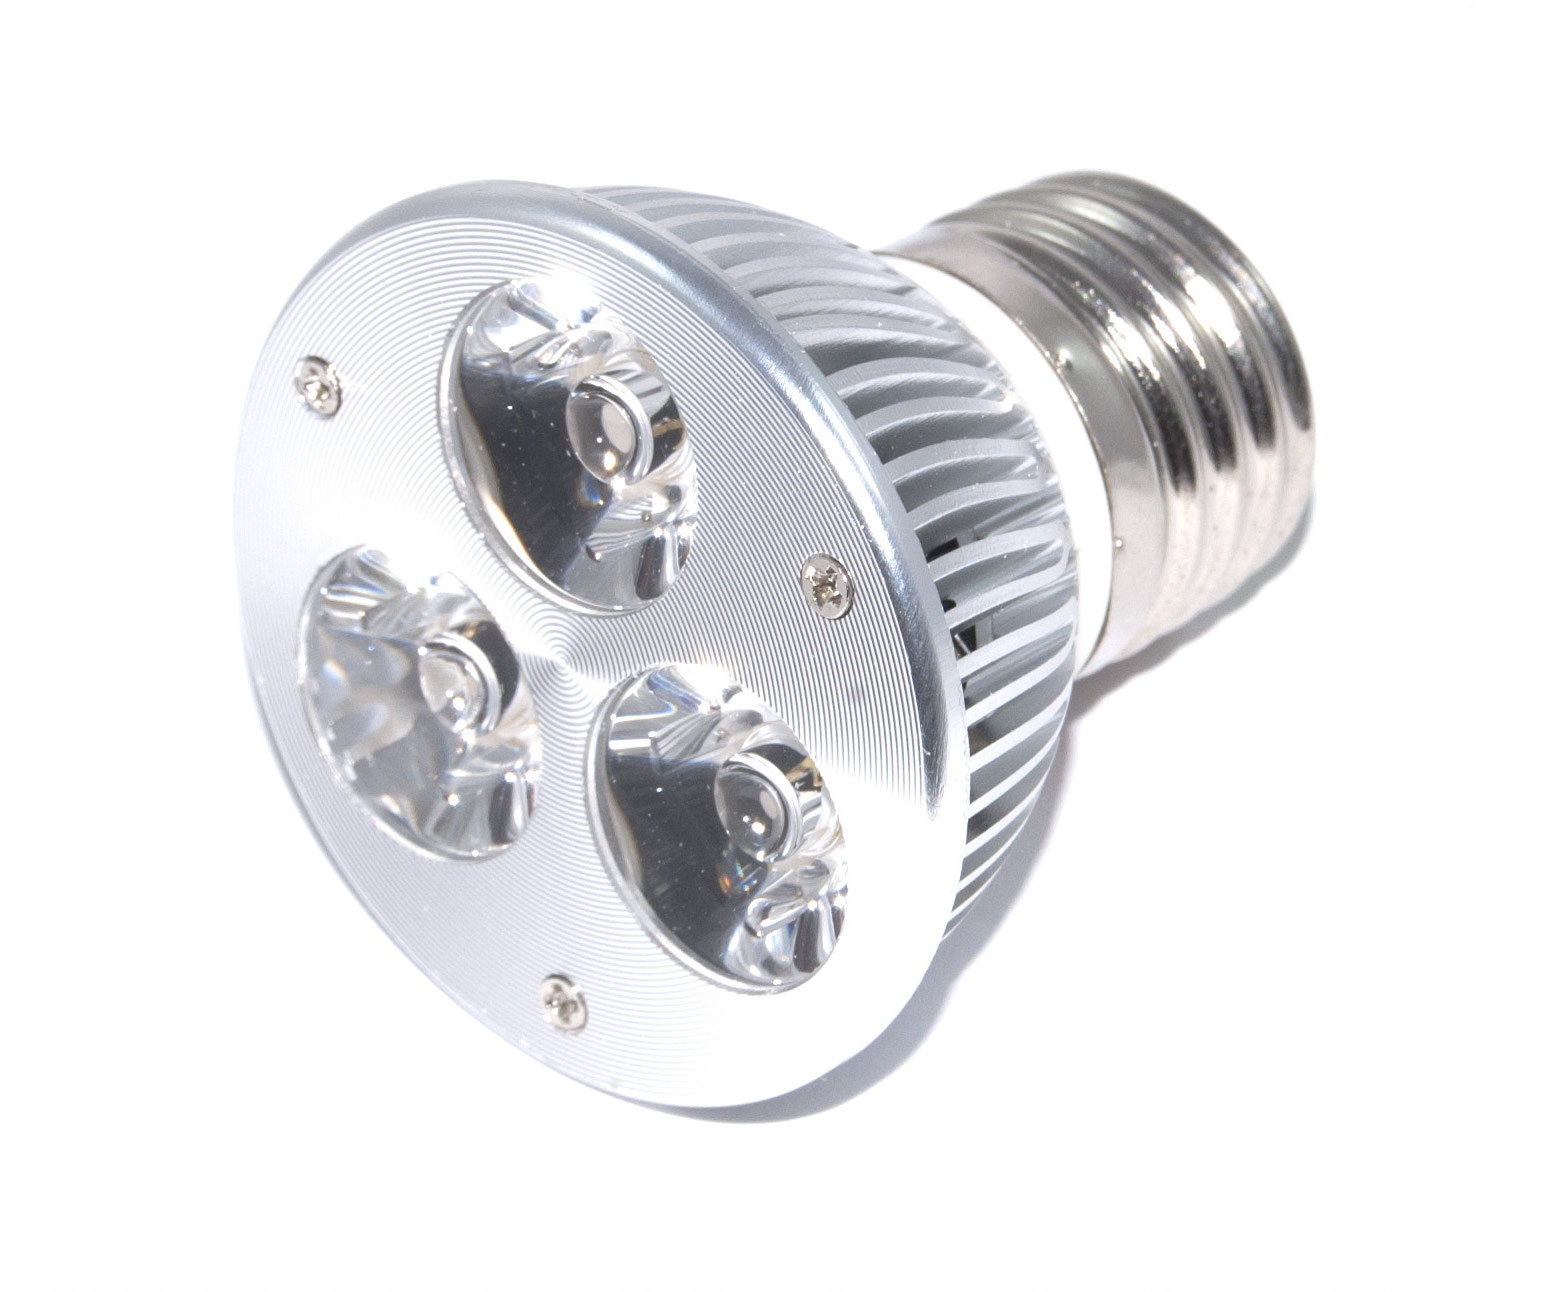 E powerled w power led spot watt warm weiß powerled